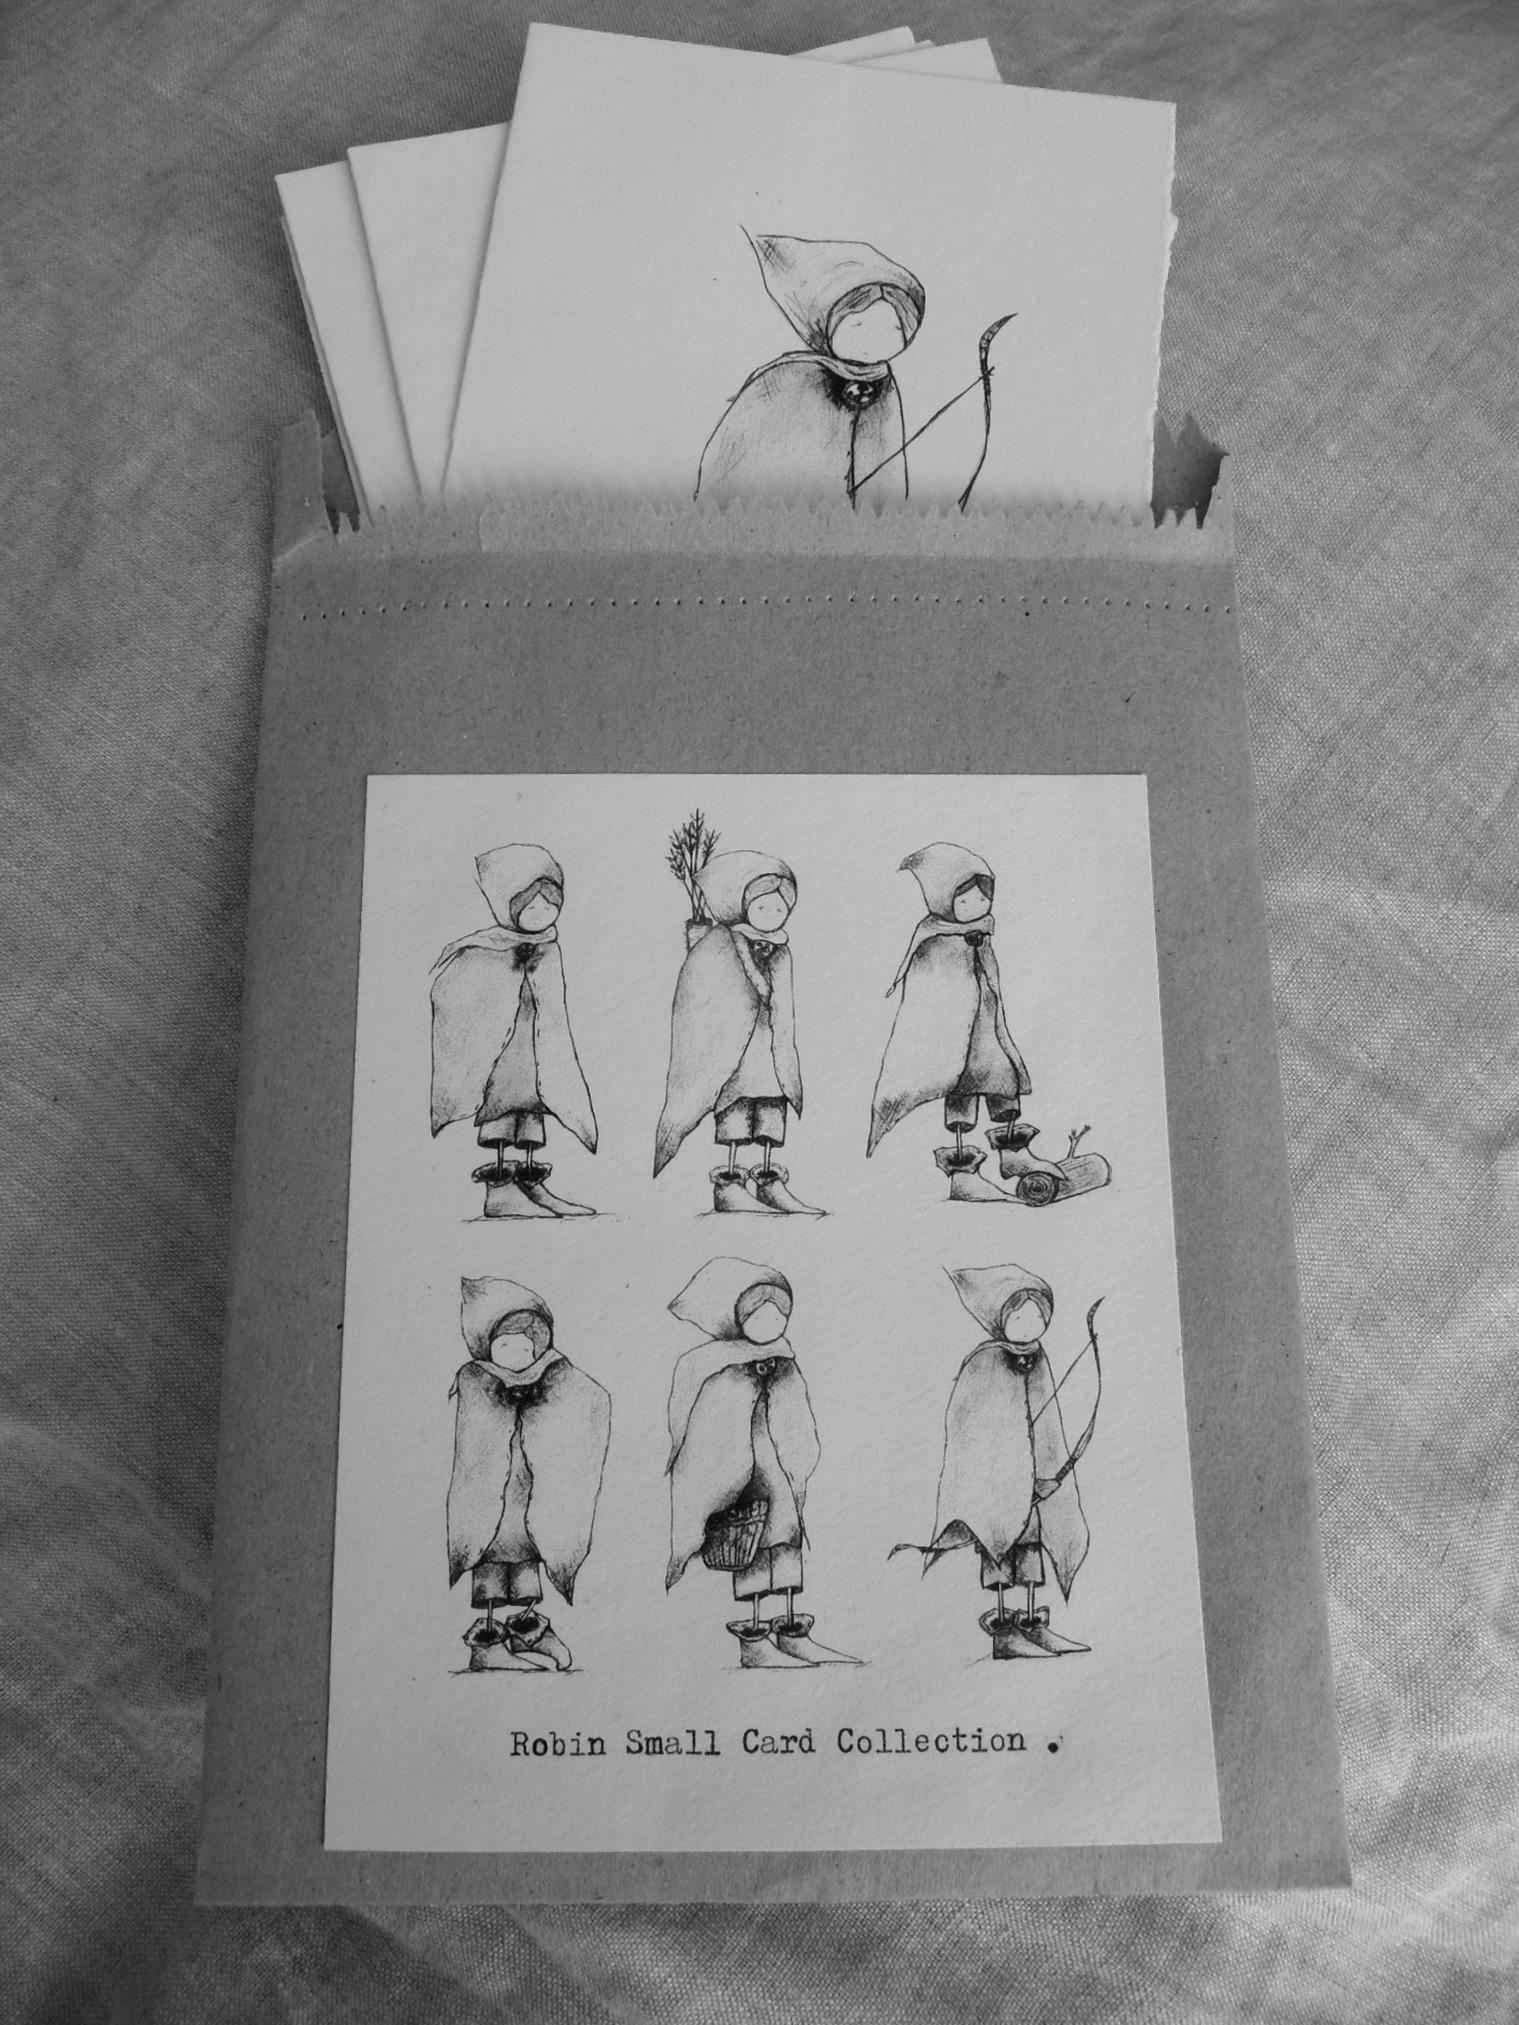 Robin Small cards